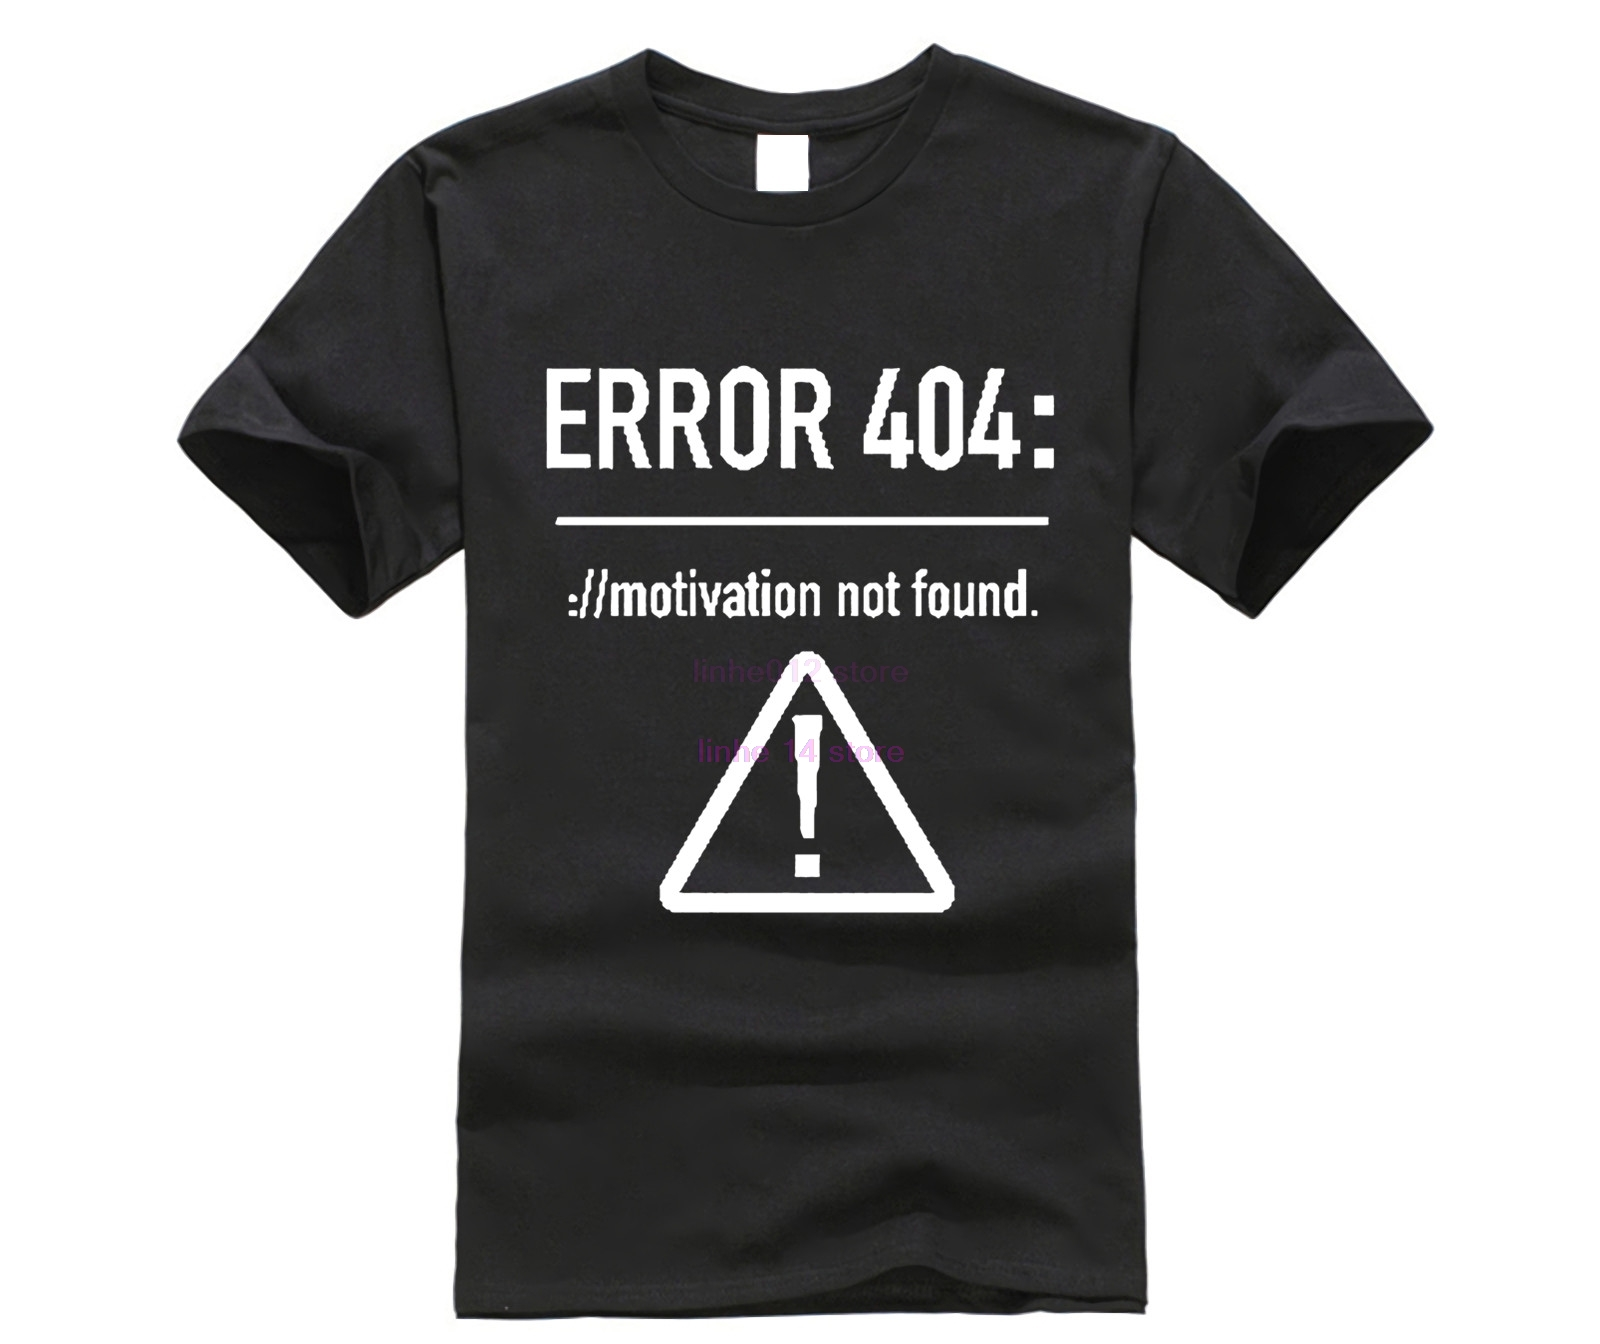 Men T <font><b>Shirts</b></font> Funny Letters Design <font><b>Error</b></font> <font><b>404</b></font> Motivation Not Found Cotton Summer Top Tees Tshirt image